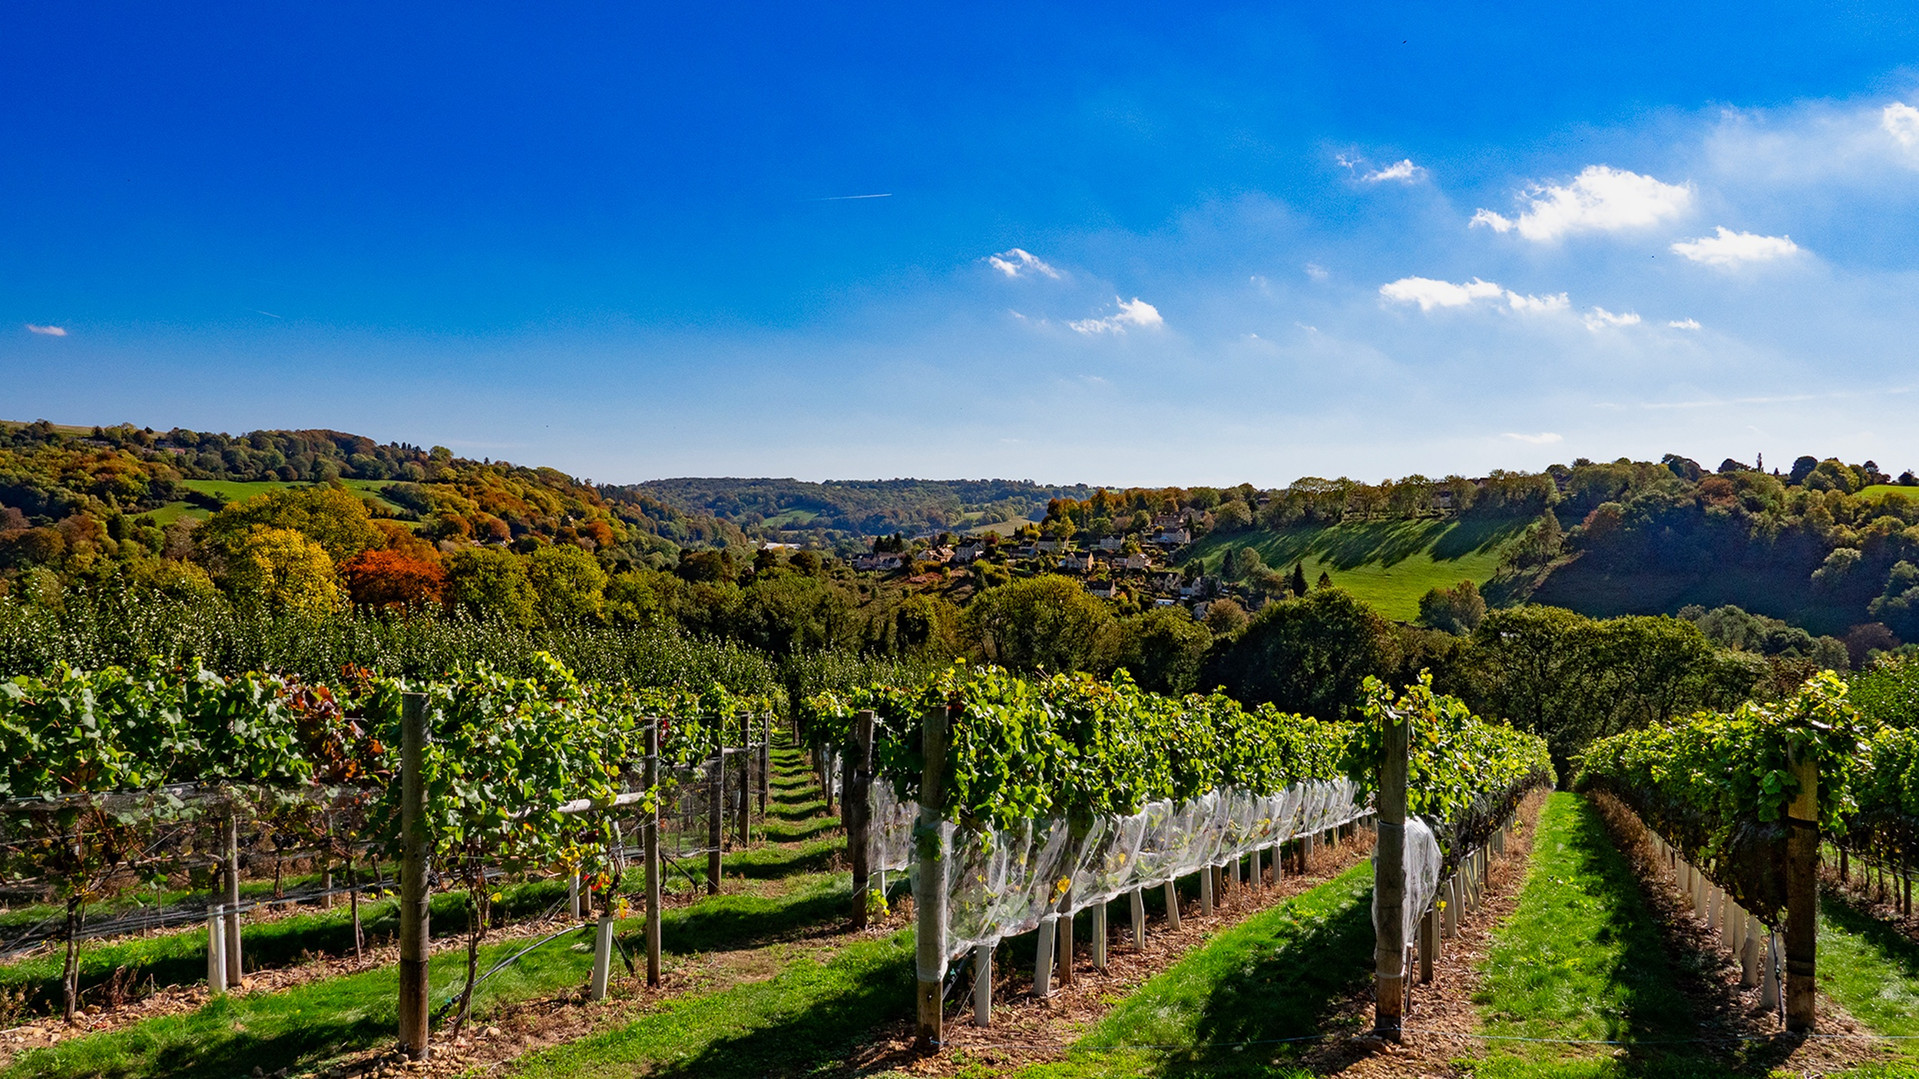 Woodchester Valley Vineyard & Winery